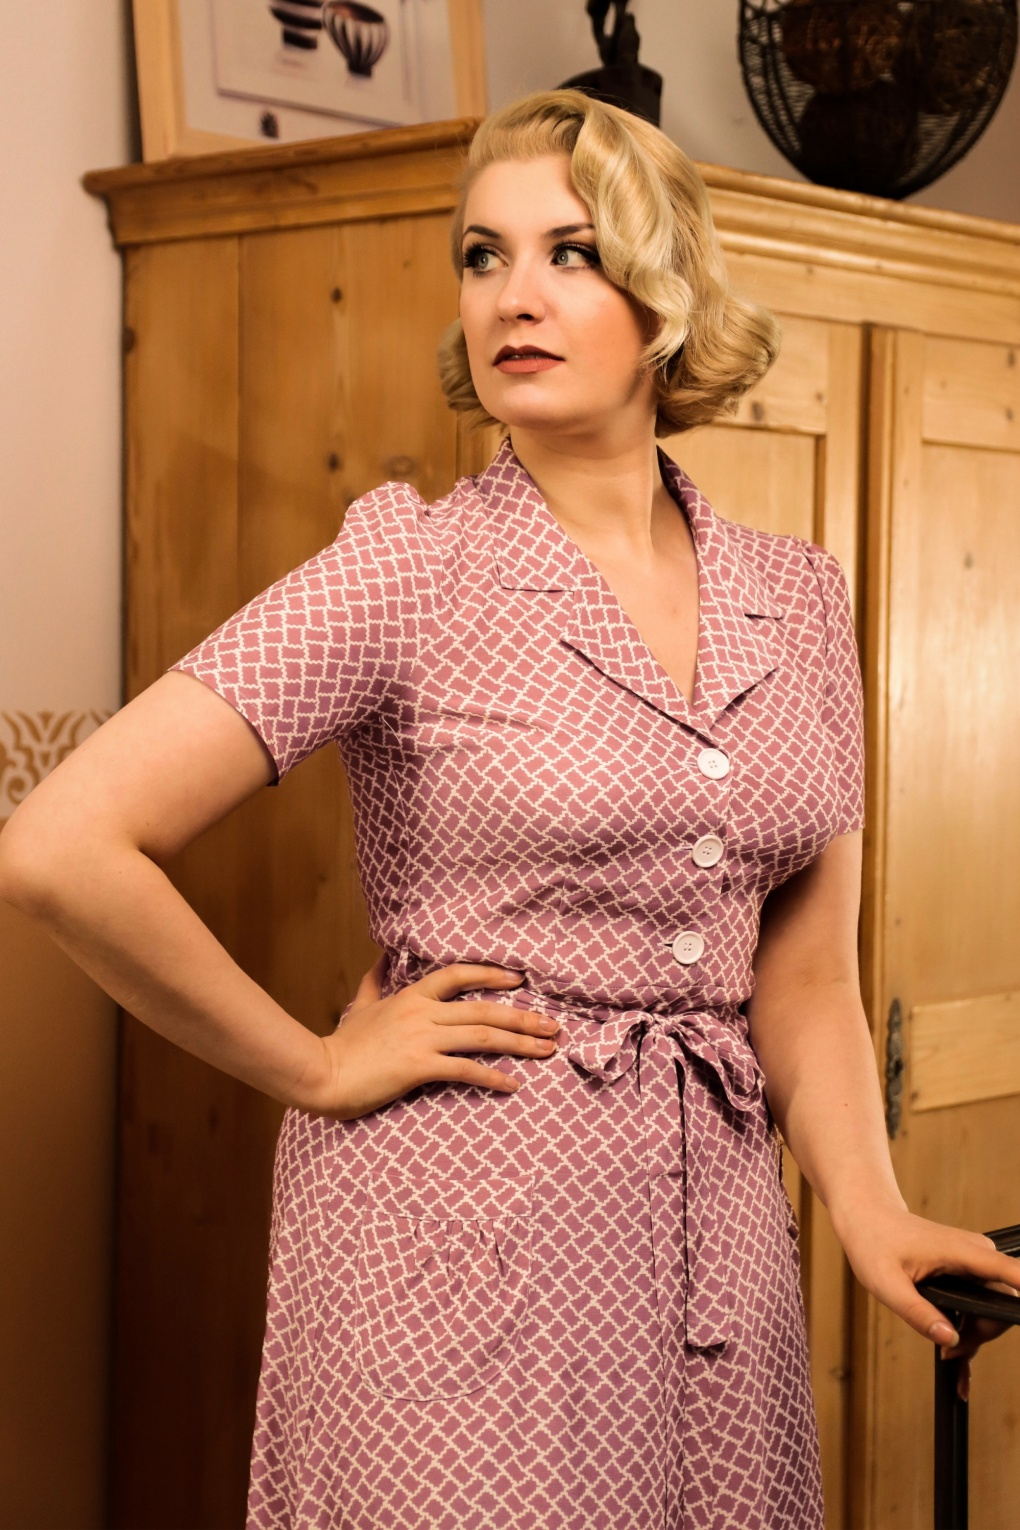 500 Vintage Style Dresses for Sale | Vintage Inspired Dresses 40s Rumba Revers Midi Dress in Dusty Pink £120.20 AT vintagedancer.com